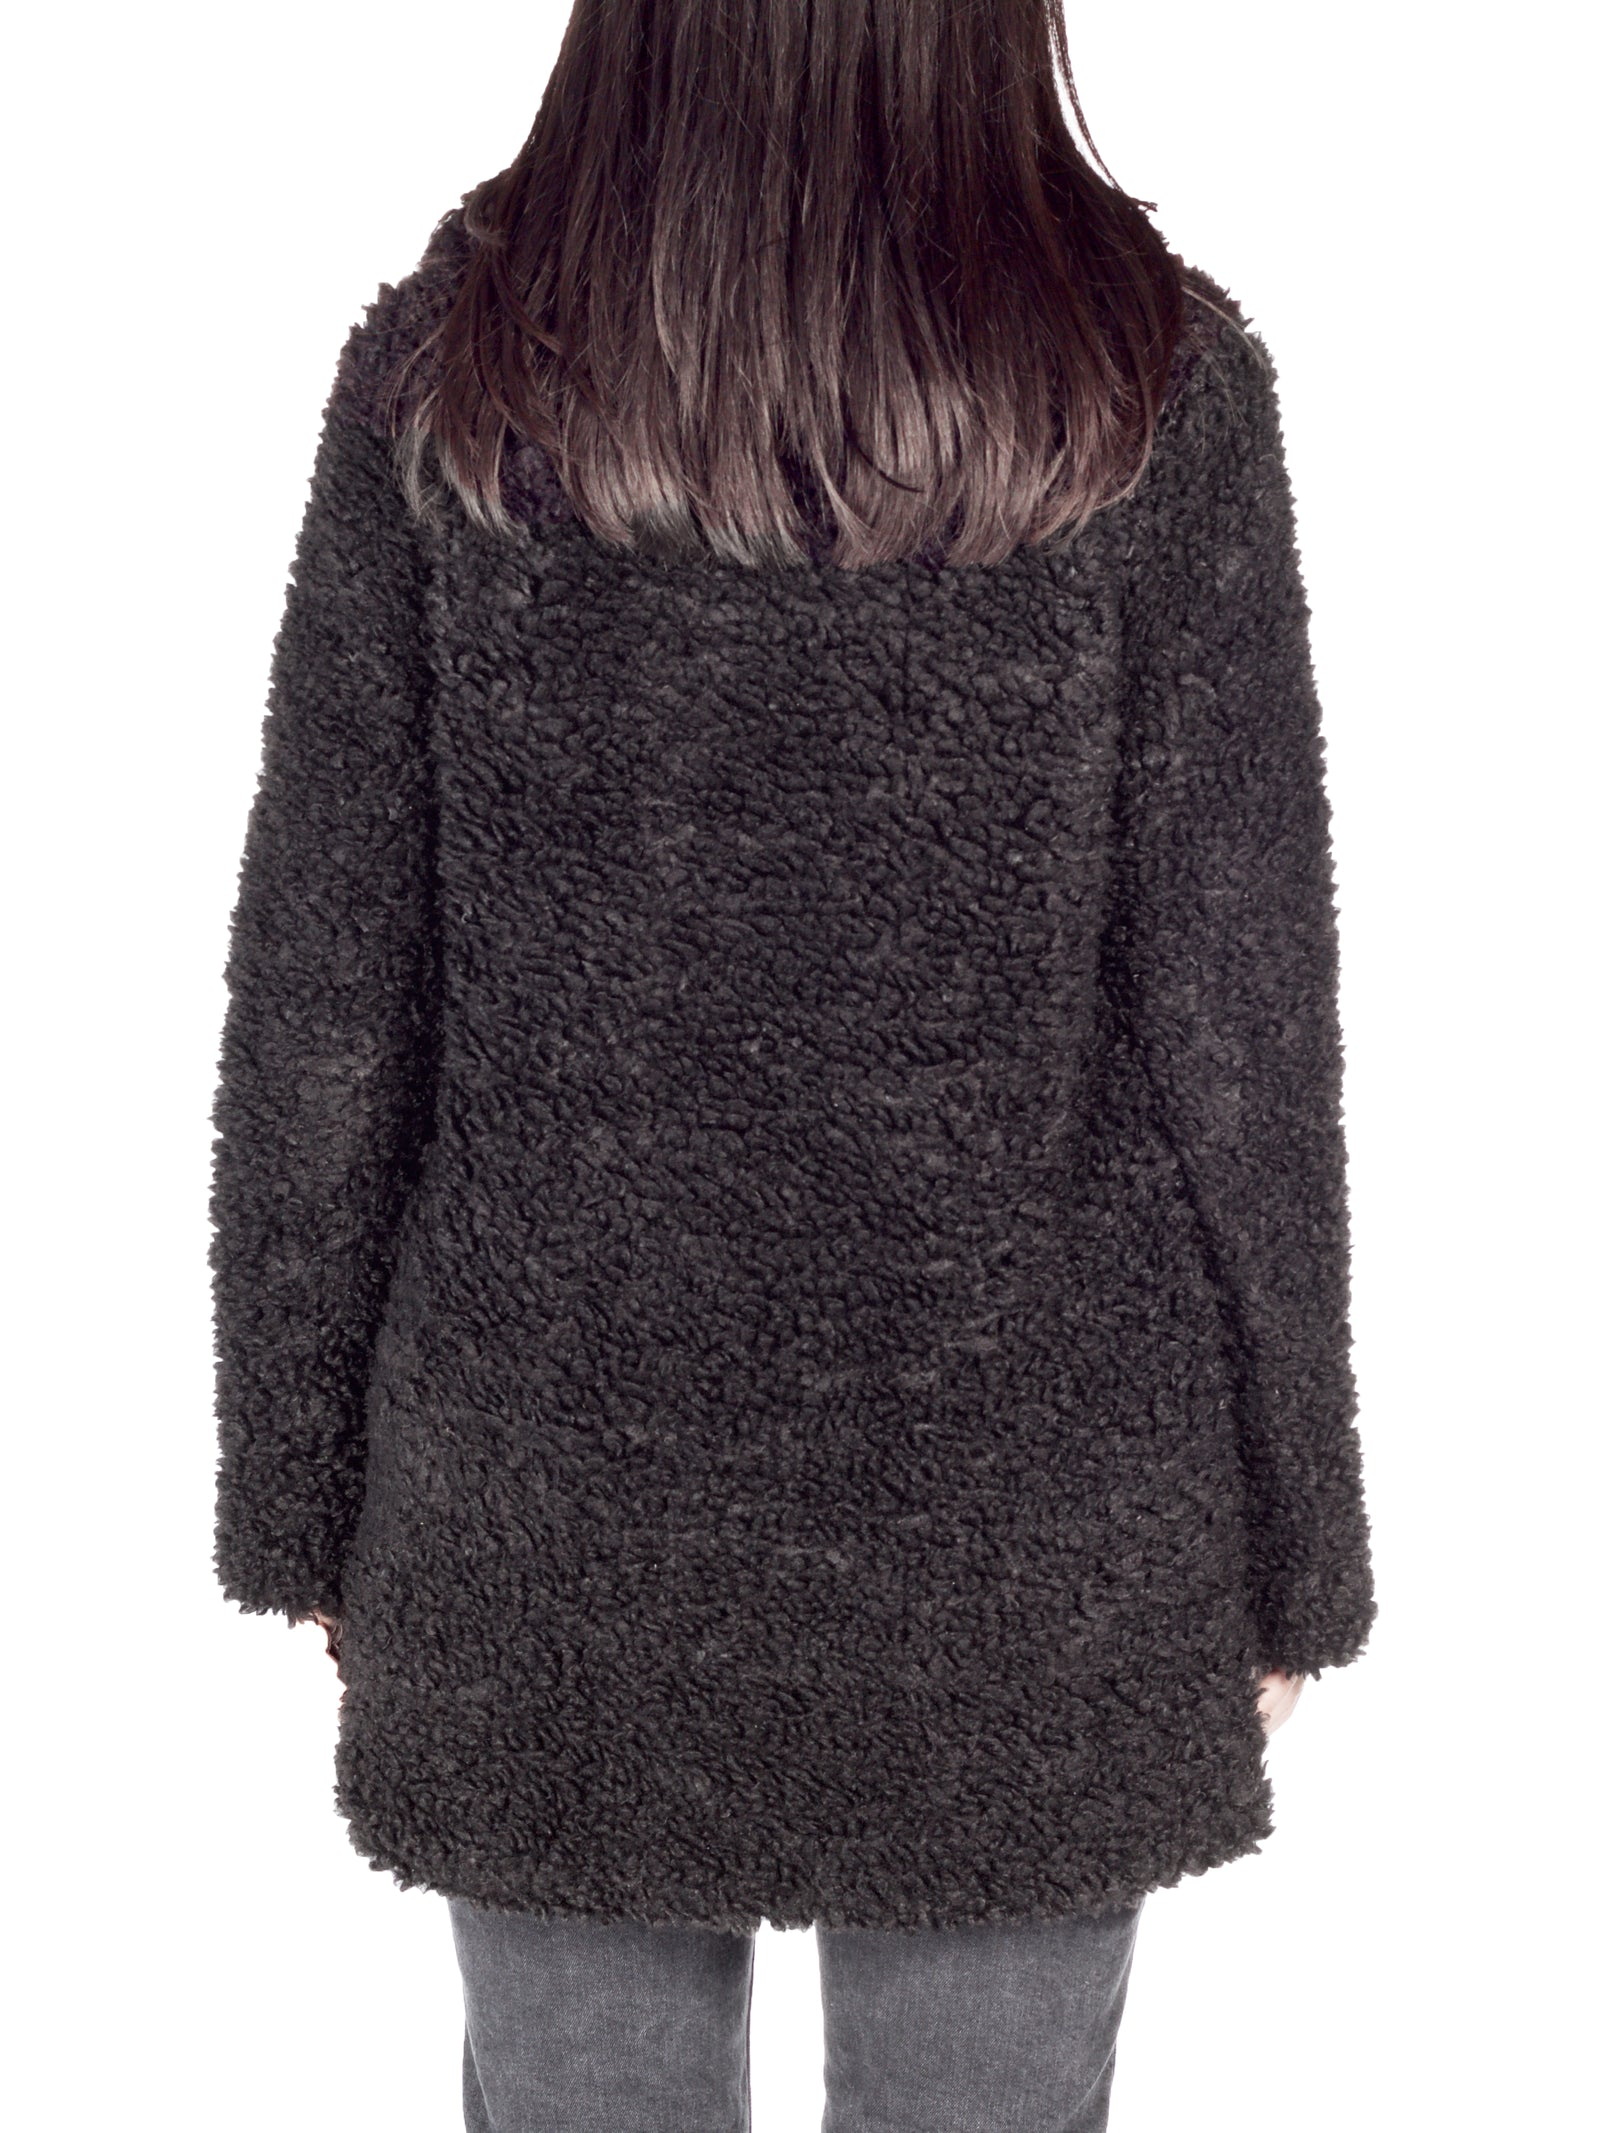 TEDDY Bear Fuzzy Coat - PRADEGAL